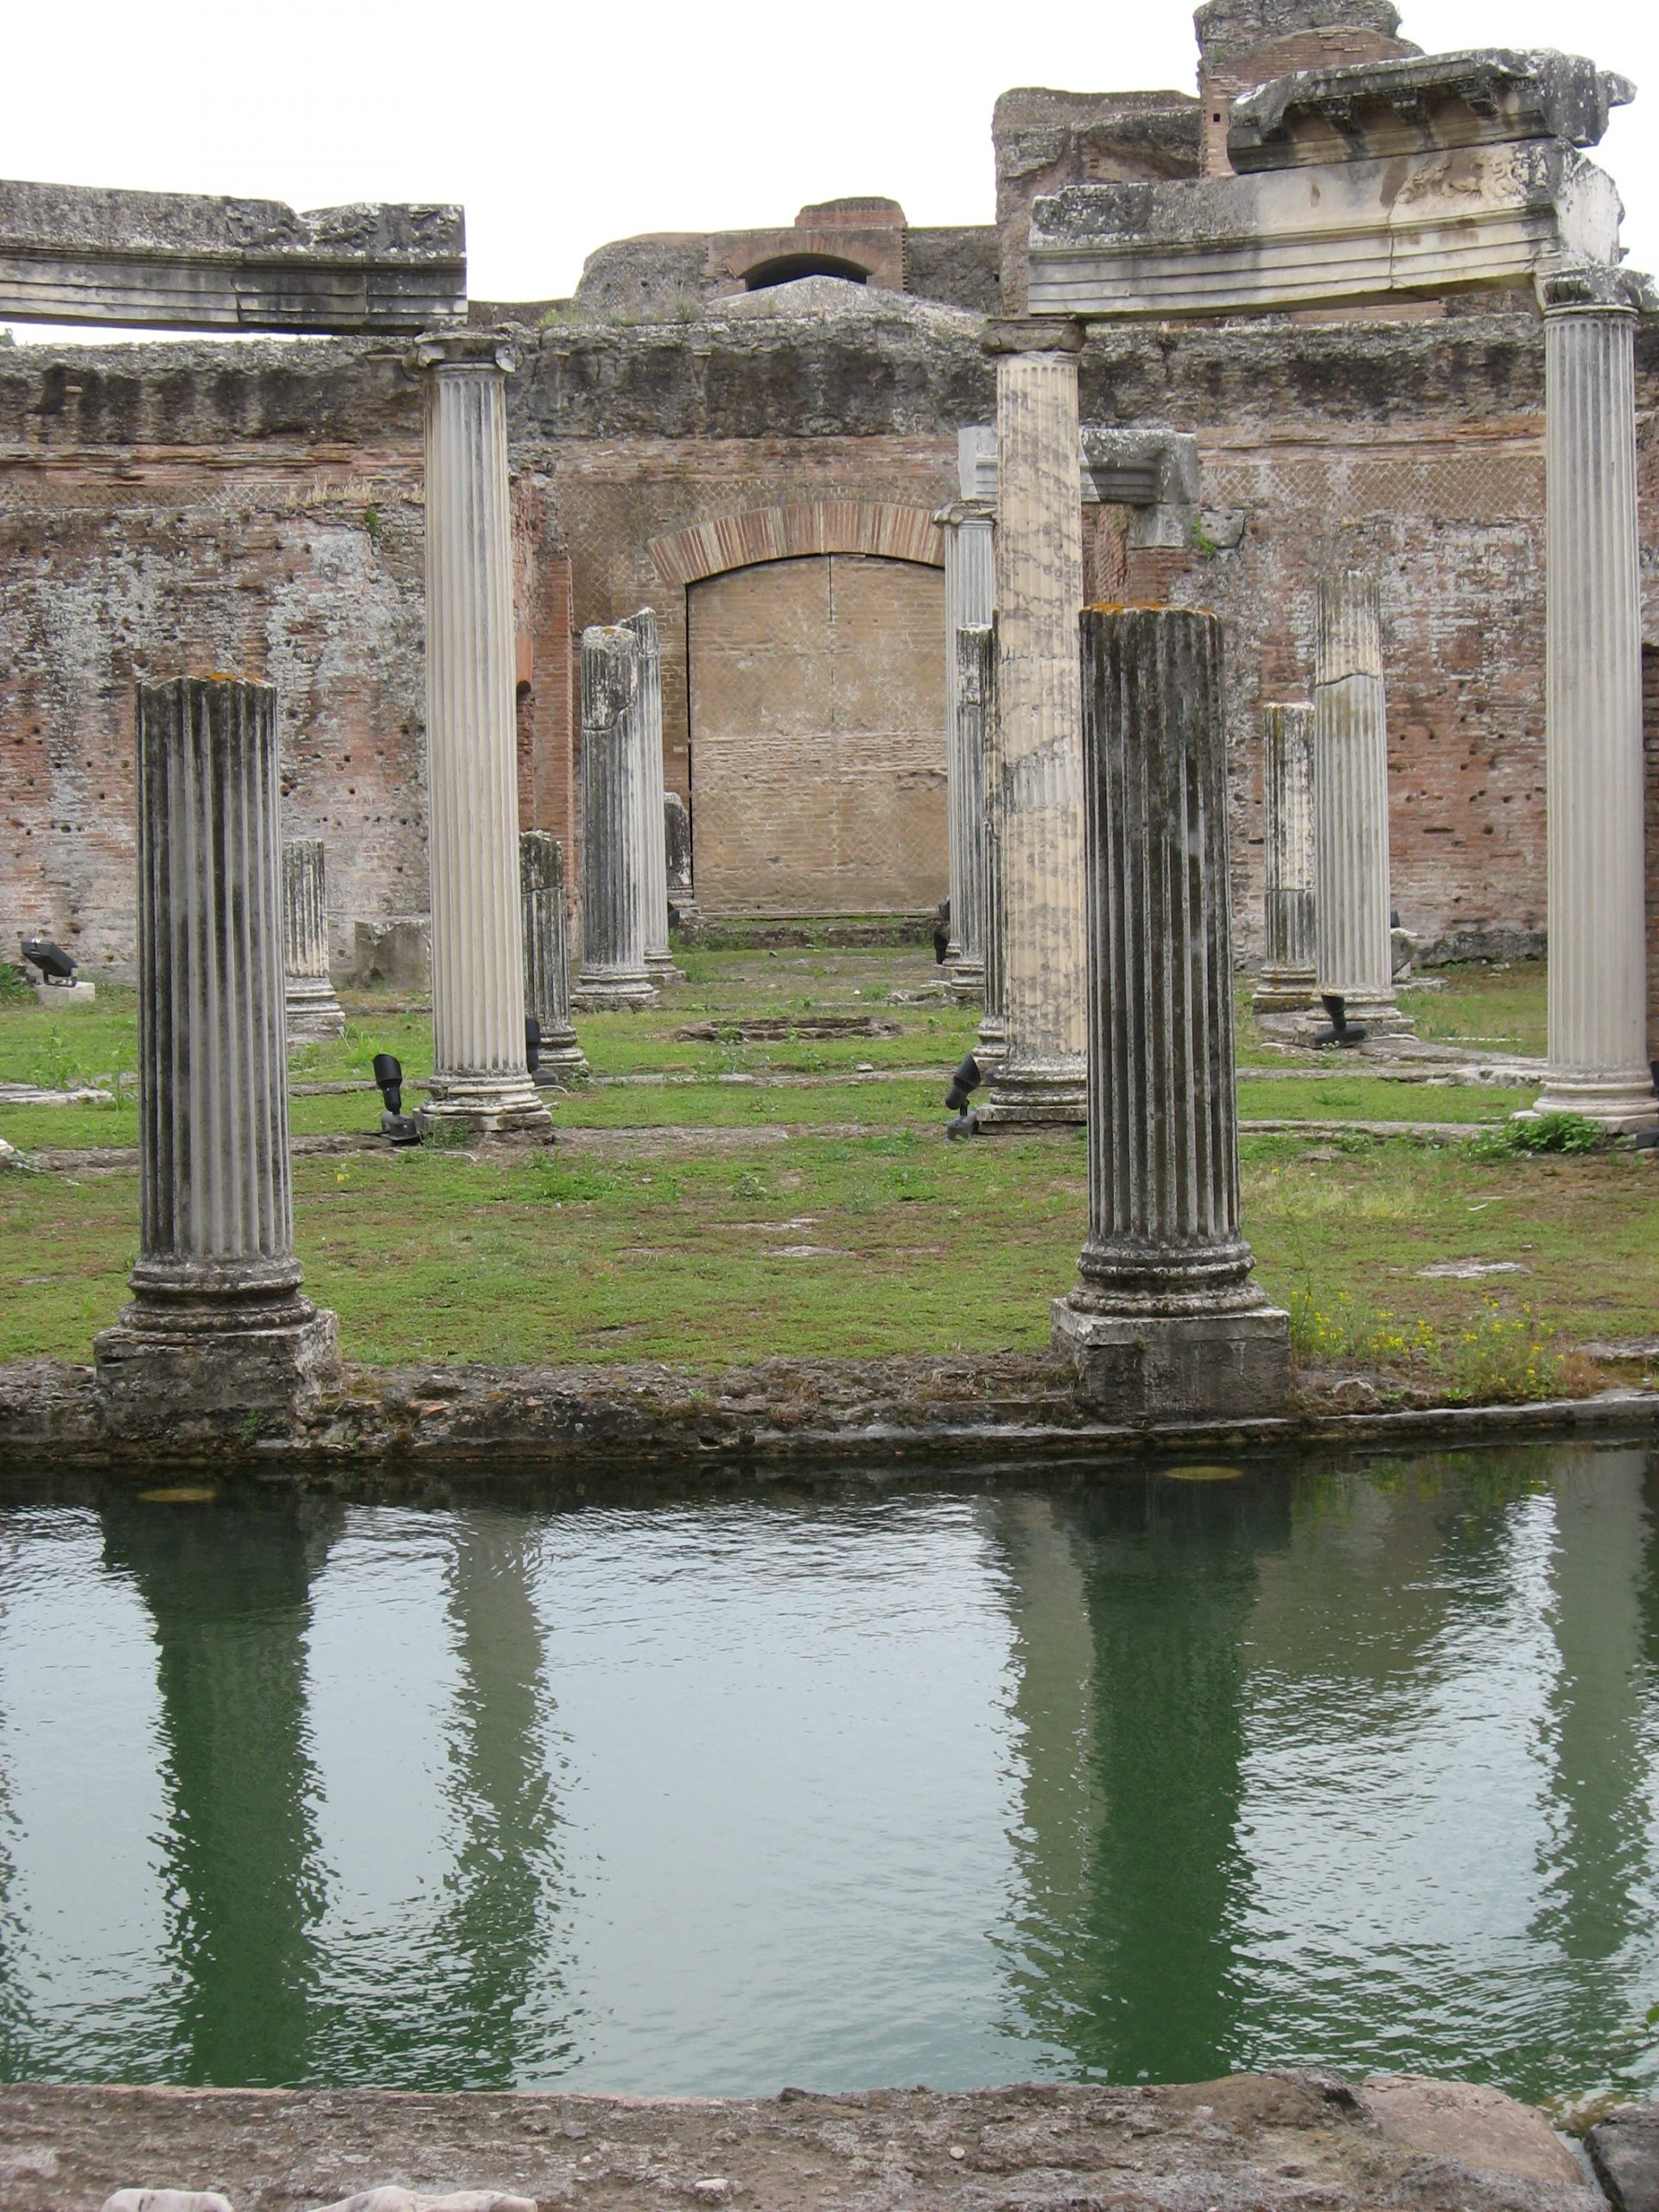 another detail of the so-called Maritime Theater in Hadrian's Villa. It was more probably and perhaps more incredibly a private bedroom surrounded by a moat!